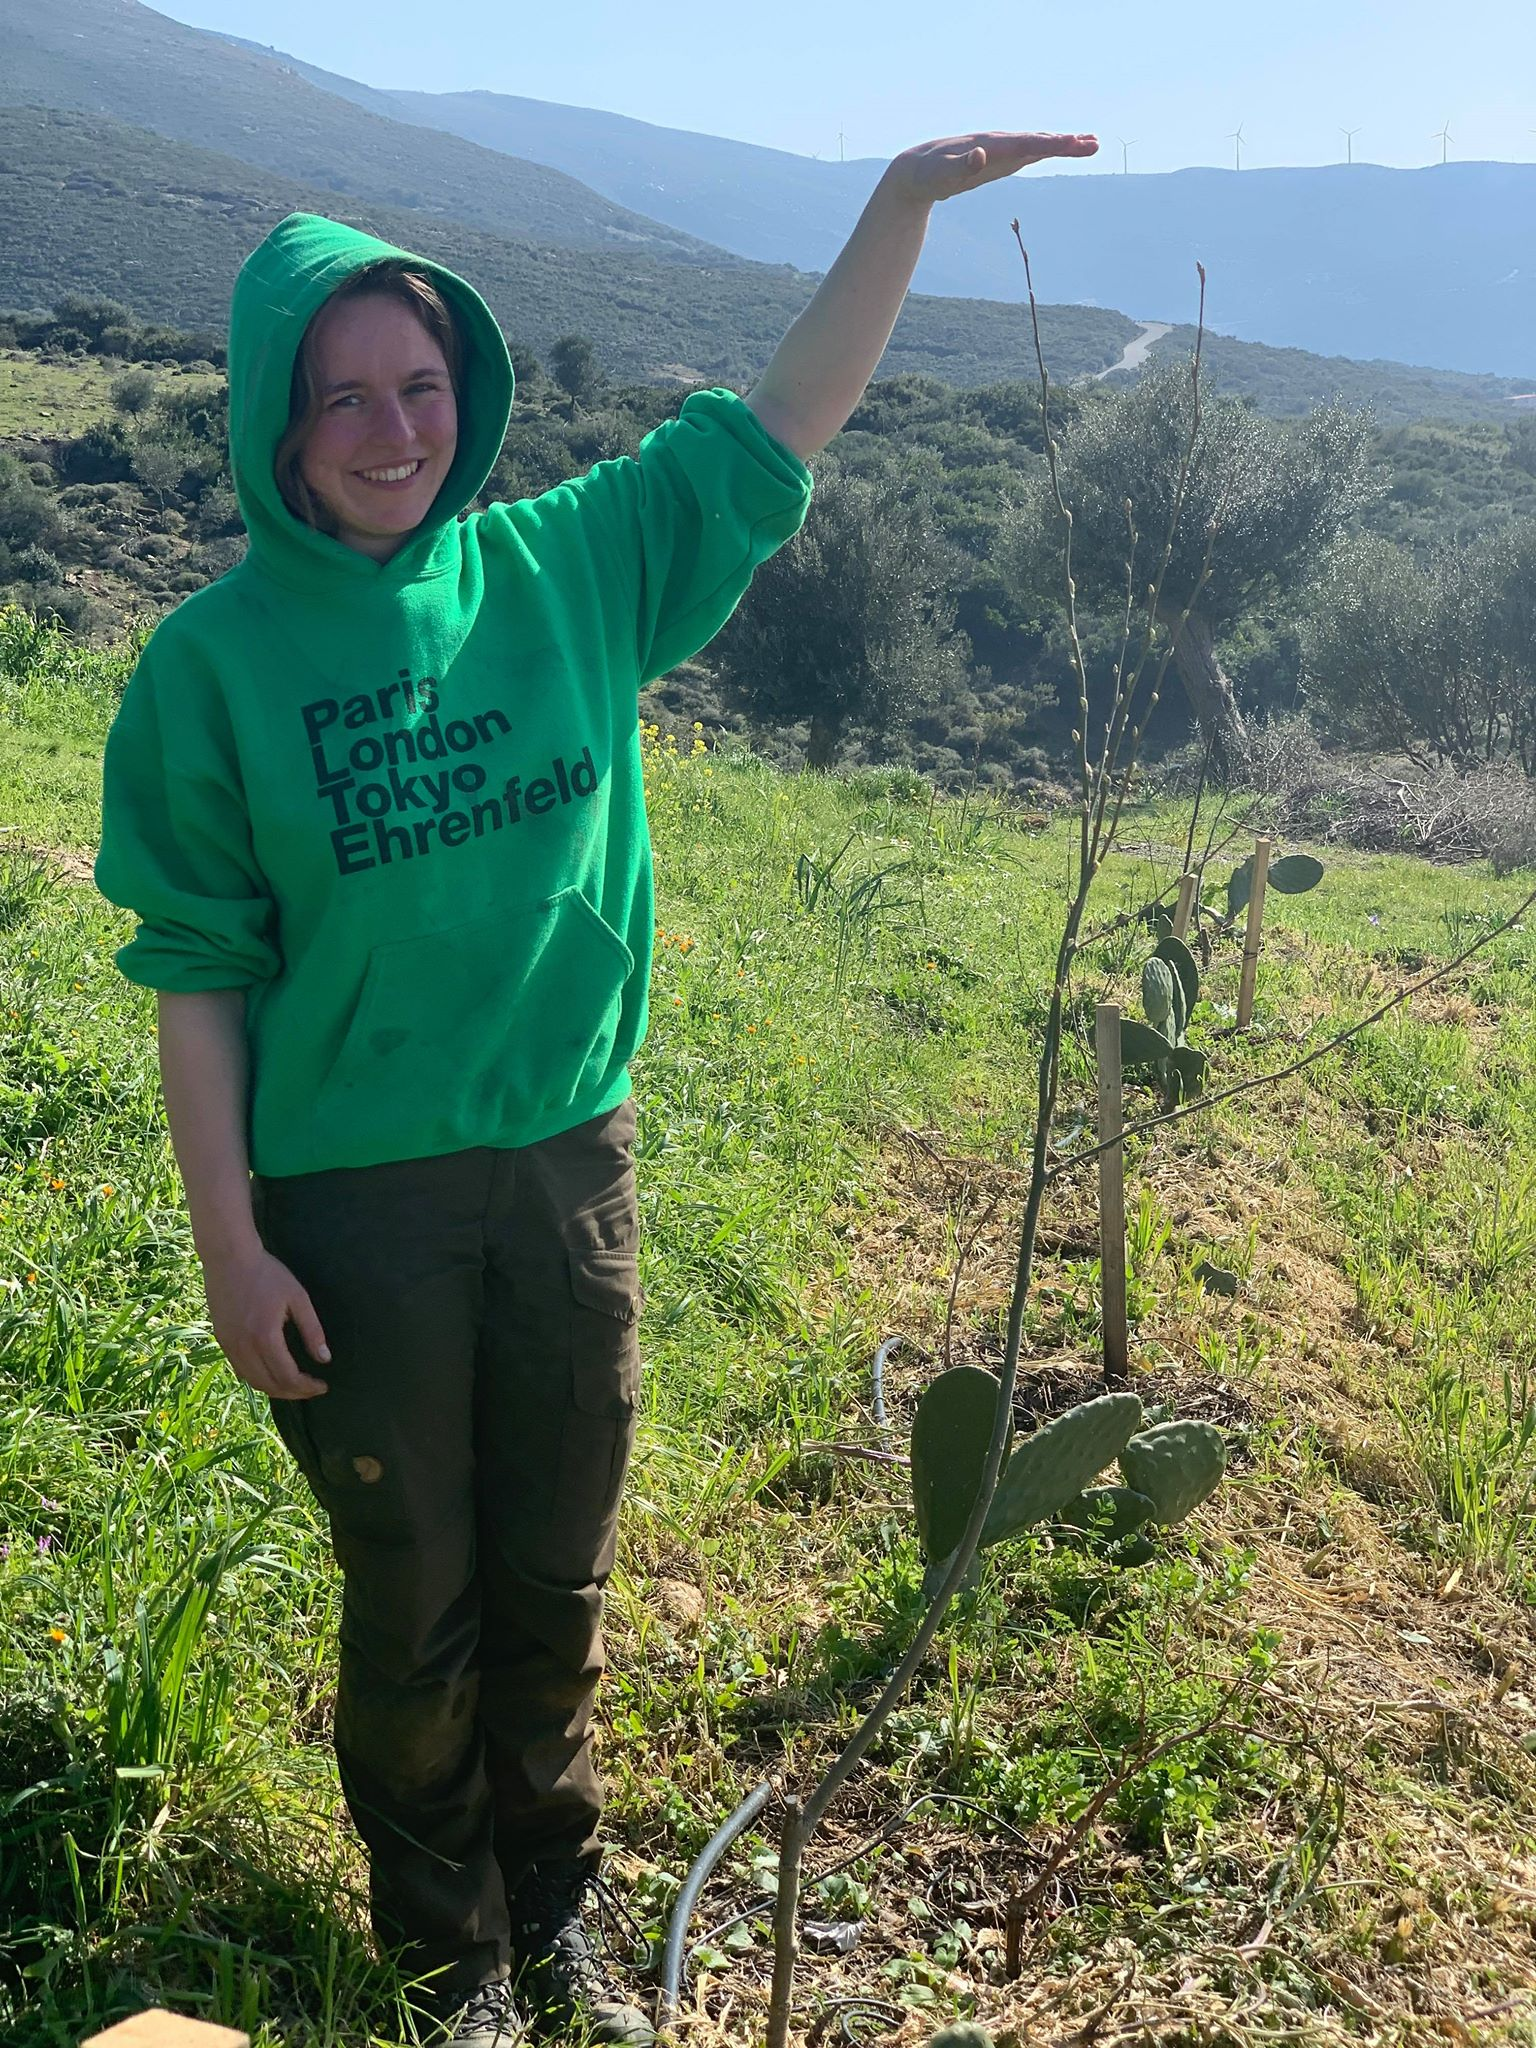 Farm volunteer, Carla Gams, standing next to one of our Poplar trees which have made enormous progress from the tiny cuttings we planted a year ago!